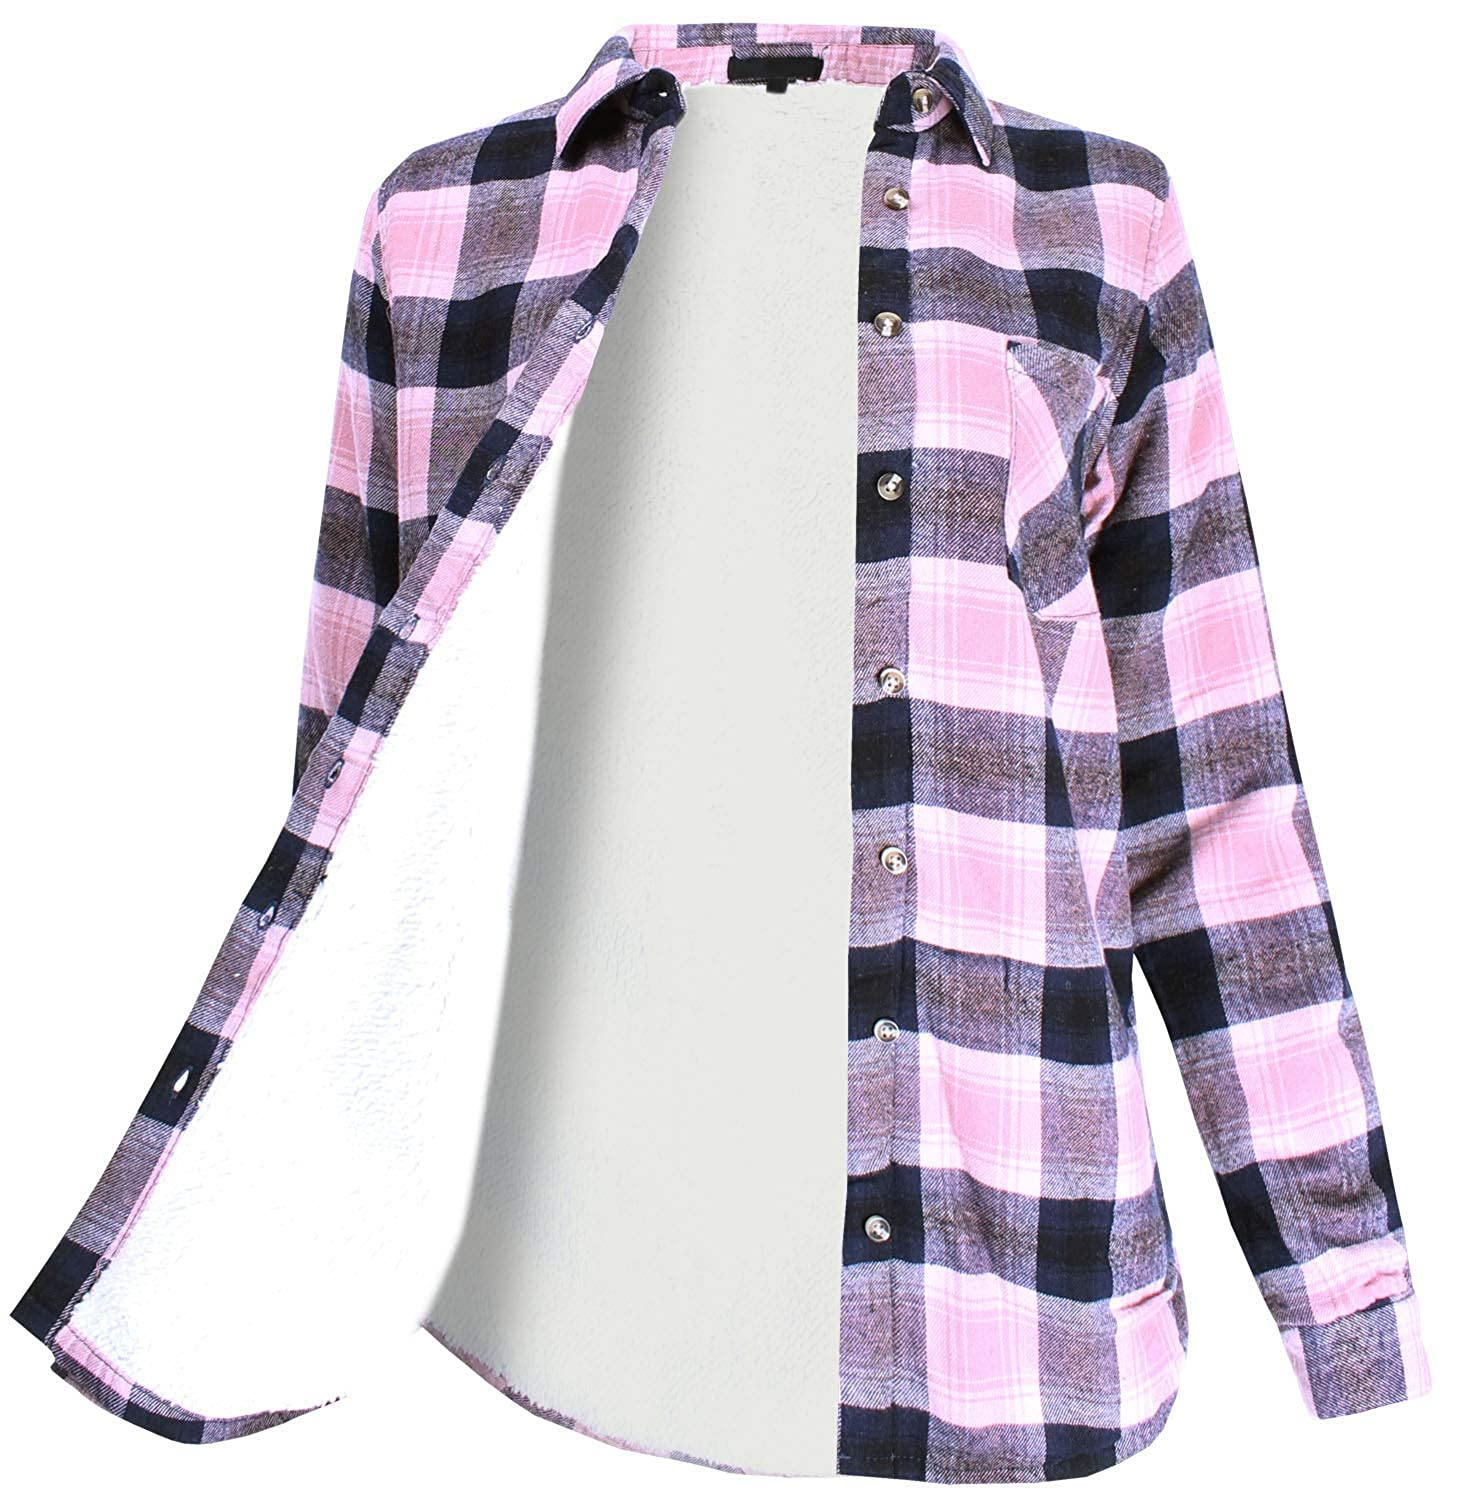 27cc7a30 Ladies' Code Women's Winter Flannel Plaid Button Down Top with ...